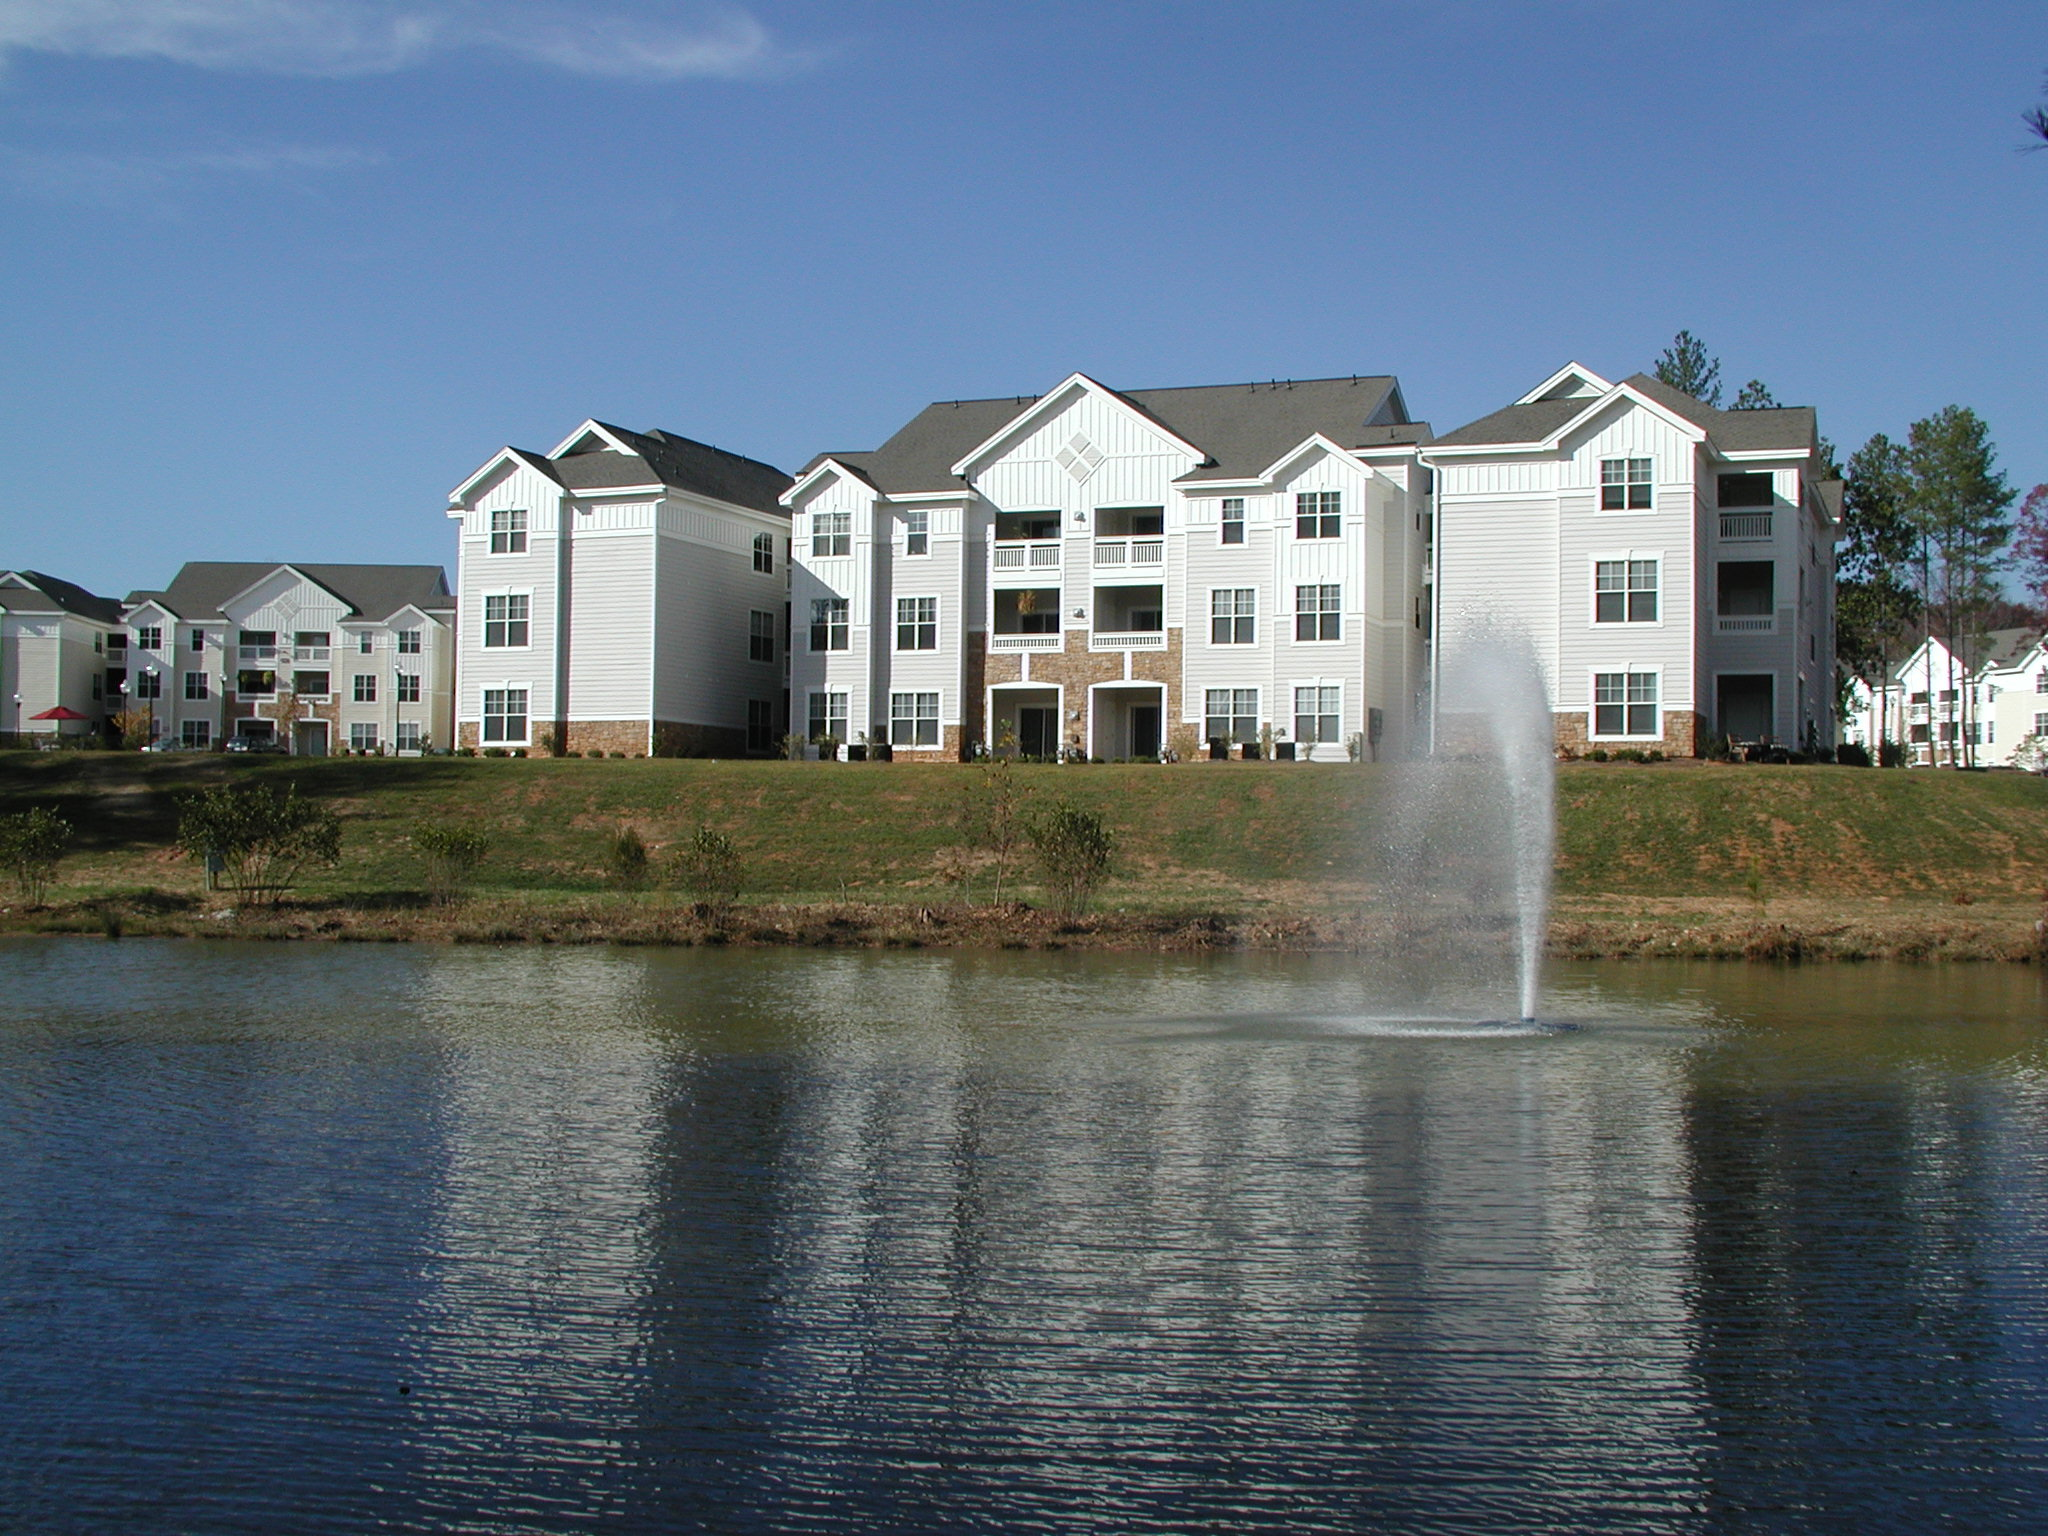 """The Links - Raleigh, NCConstructed in 2001 as part of a 264-unit master community, The Links contains 192 Class """"A"""" apartment homes and 72 individually owned condominiums. The Links community enjoys a 7,000-square foot clubhouse with a year-round indoor pool, a resort-style outdoor pool, a 12-station fitness center, a business center, a video and book library and a piano bar."""